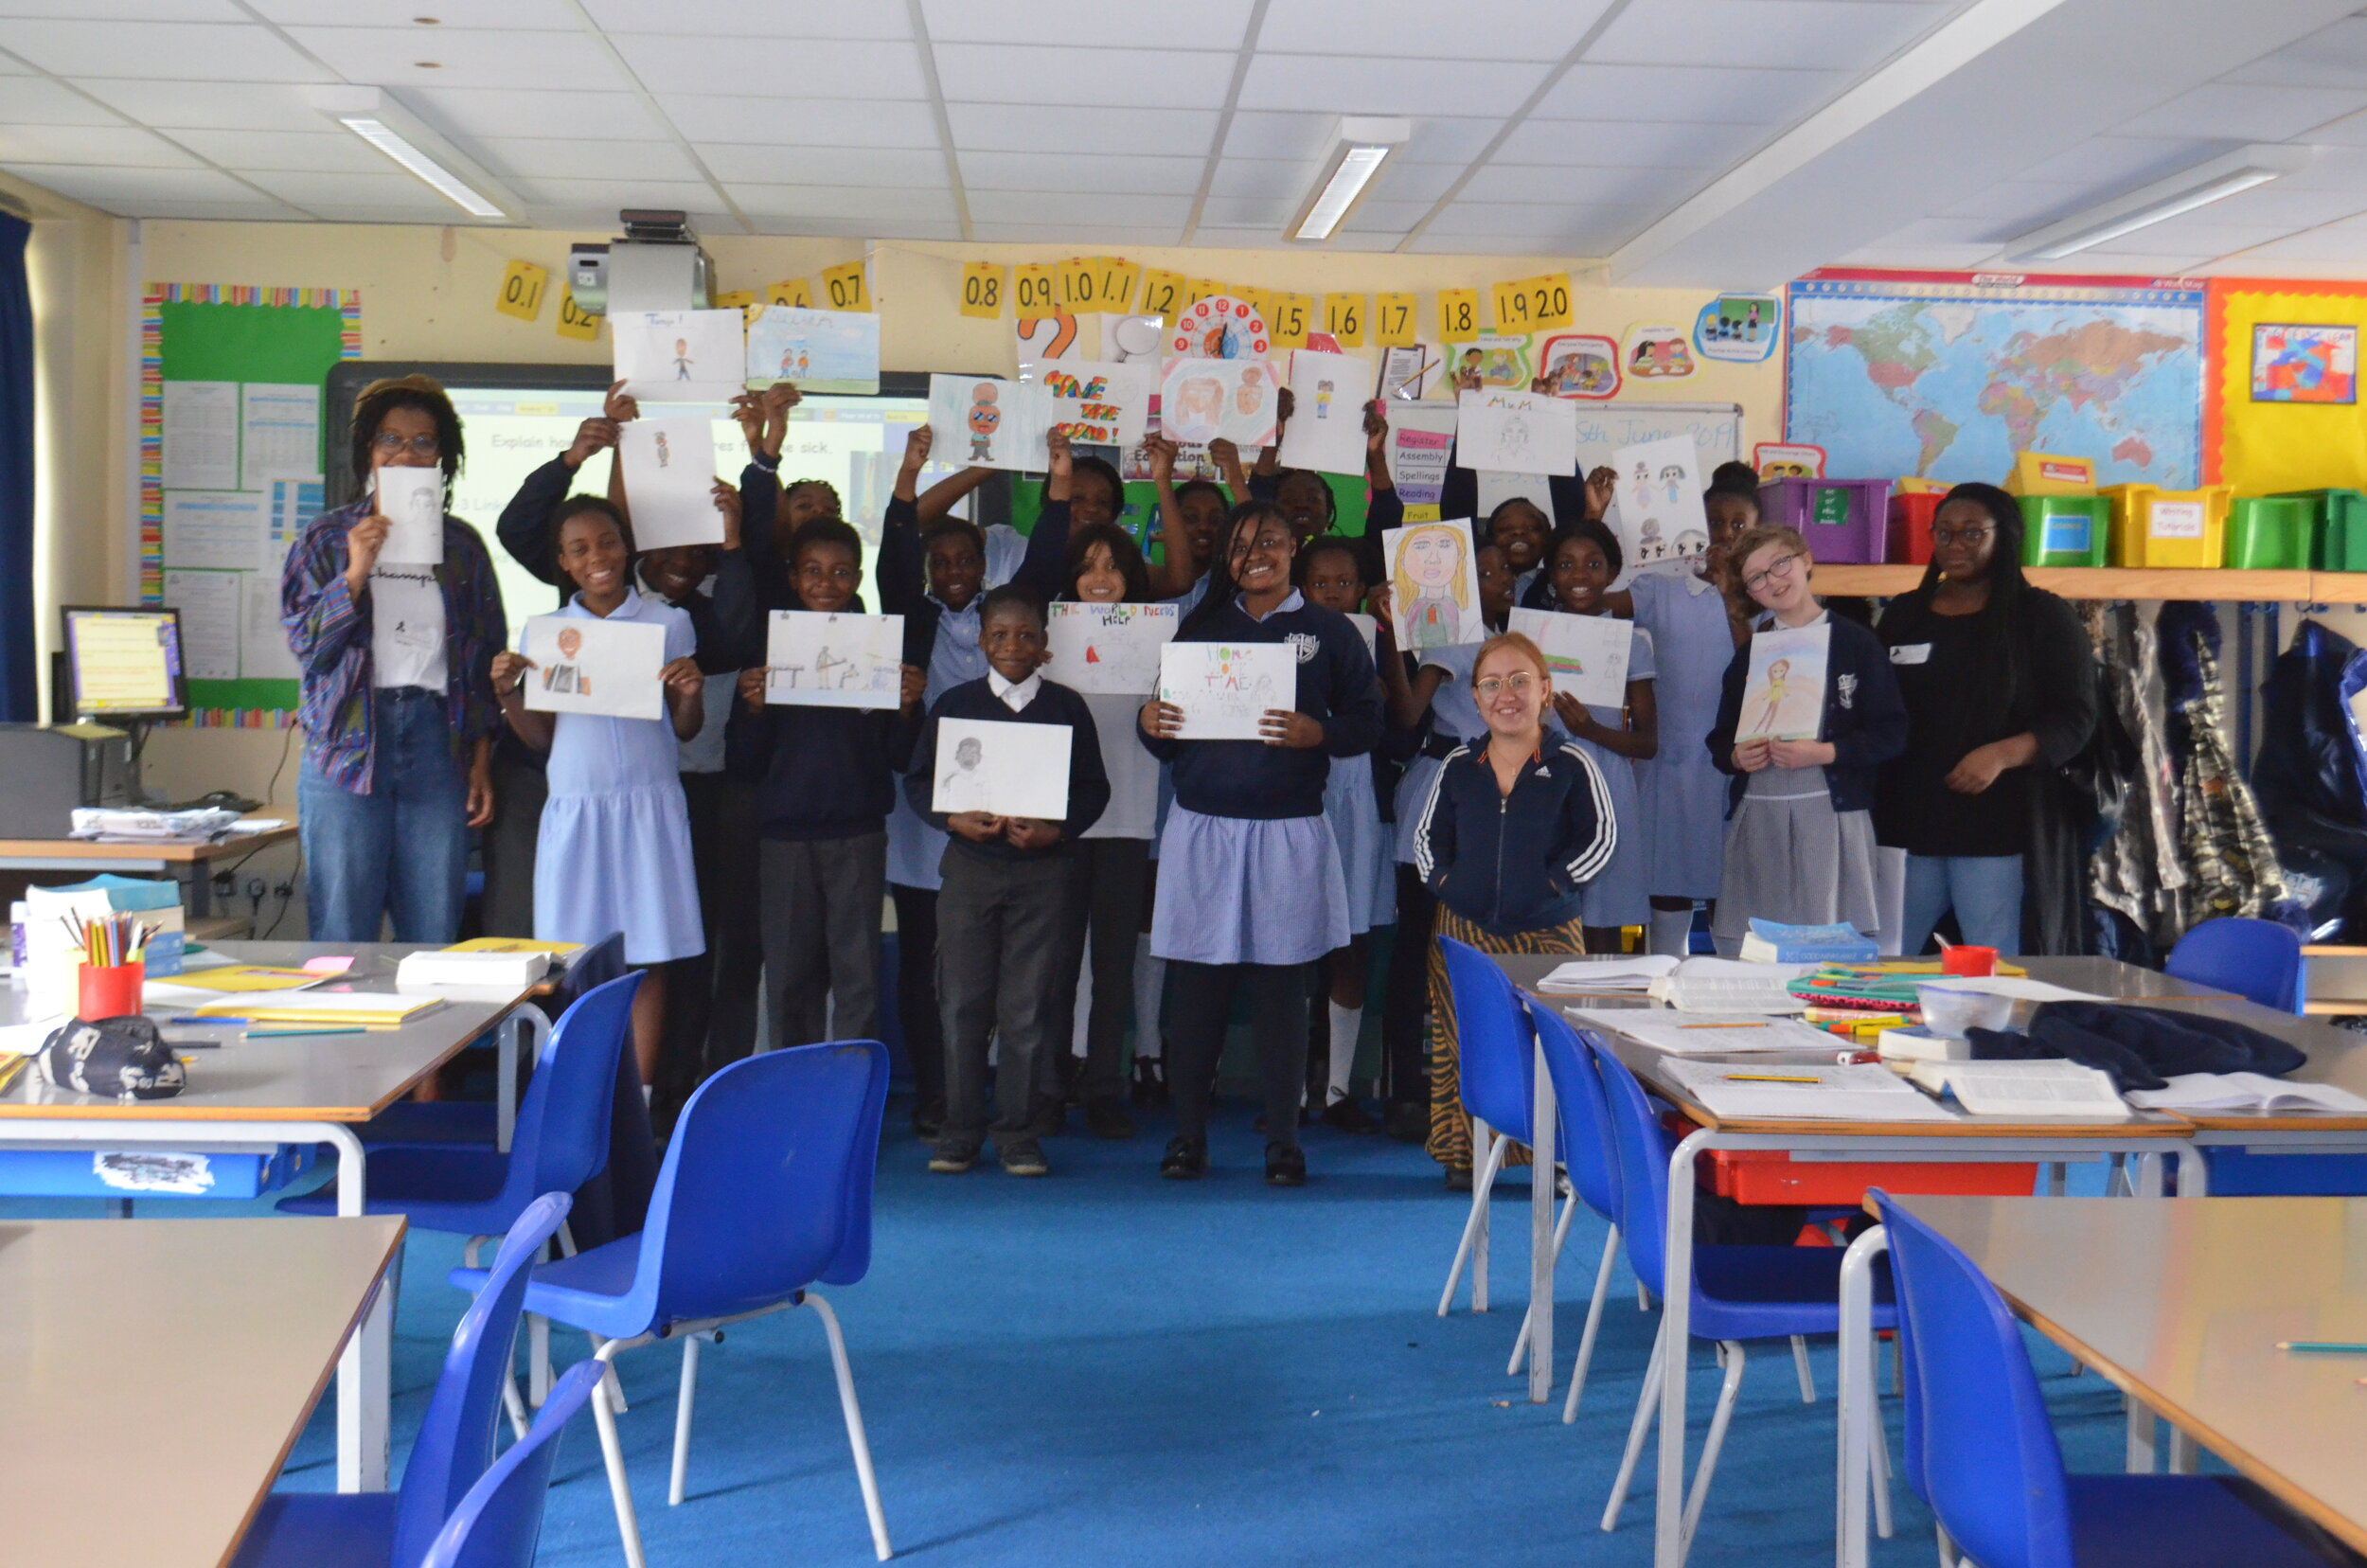 Oliva, Cora and Devinya with Yr 6 pupils and their artworks